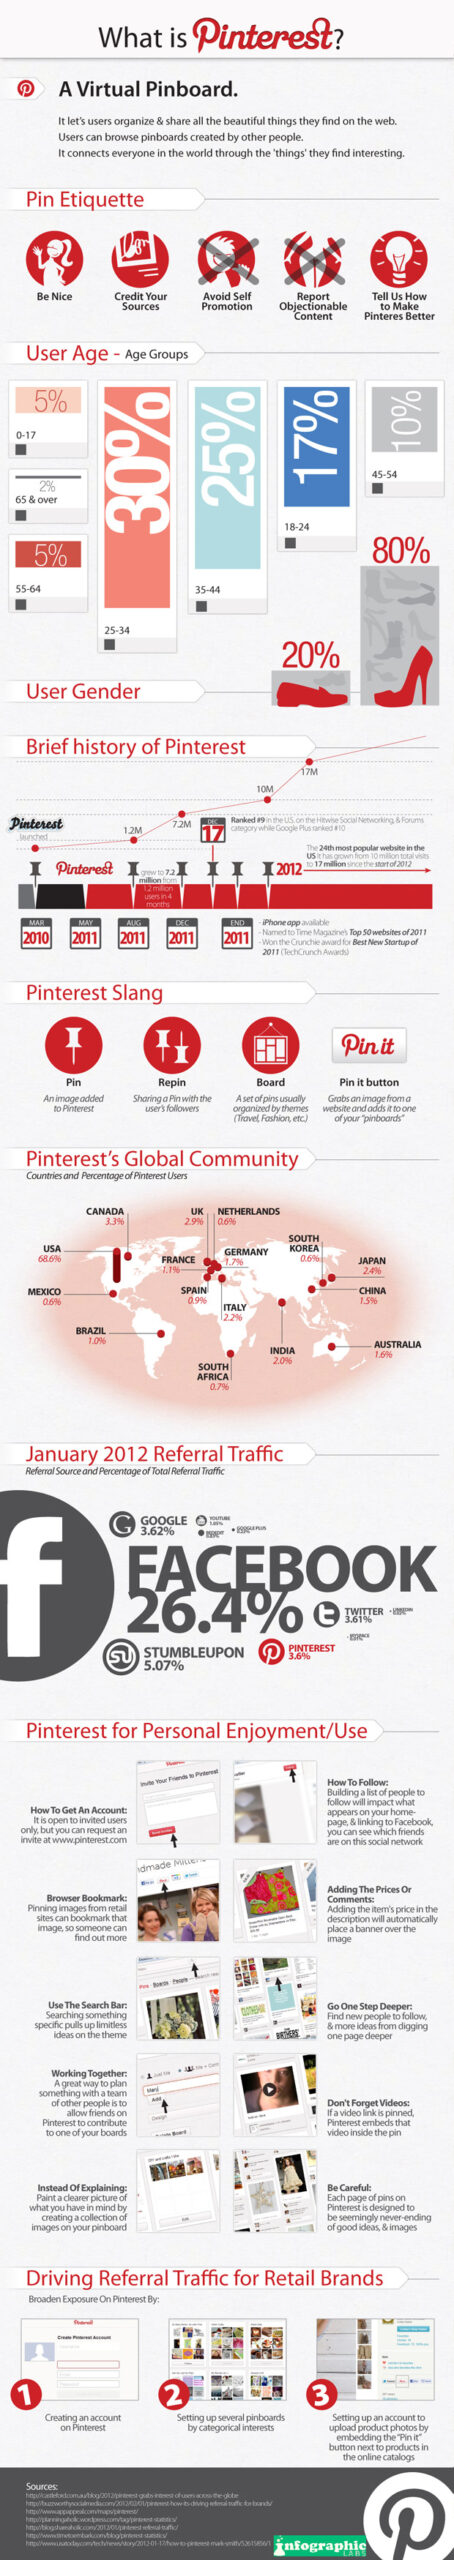 Infographic: What Is Pinterest?